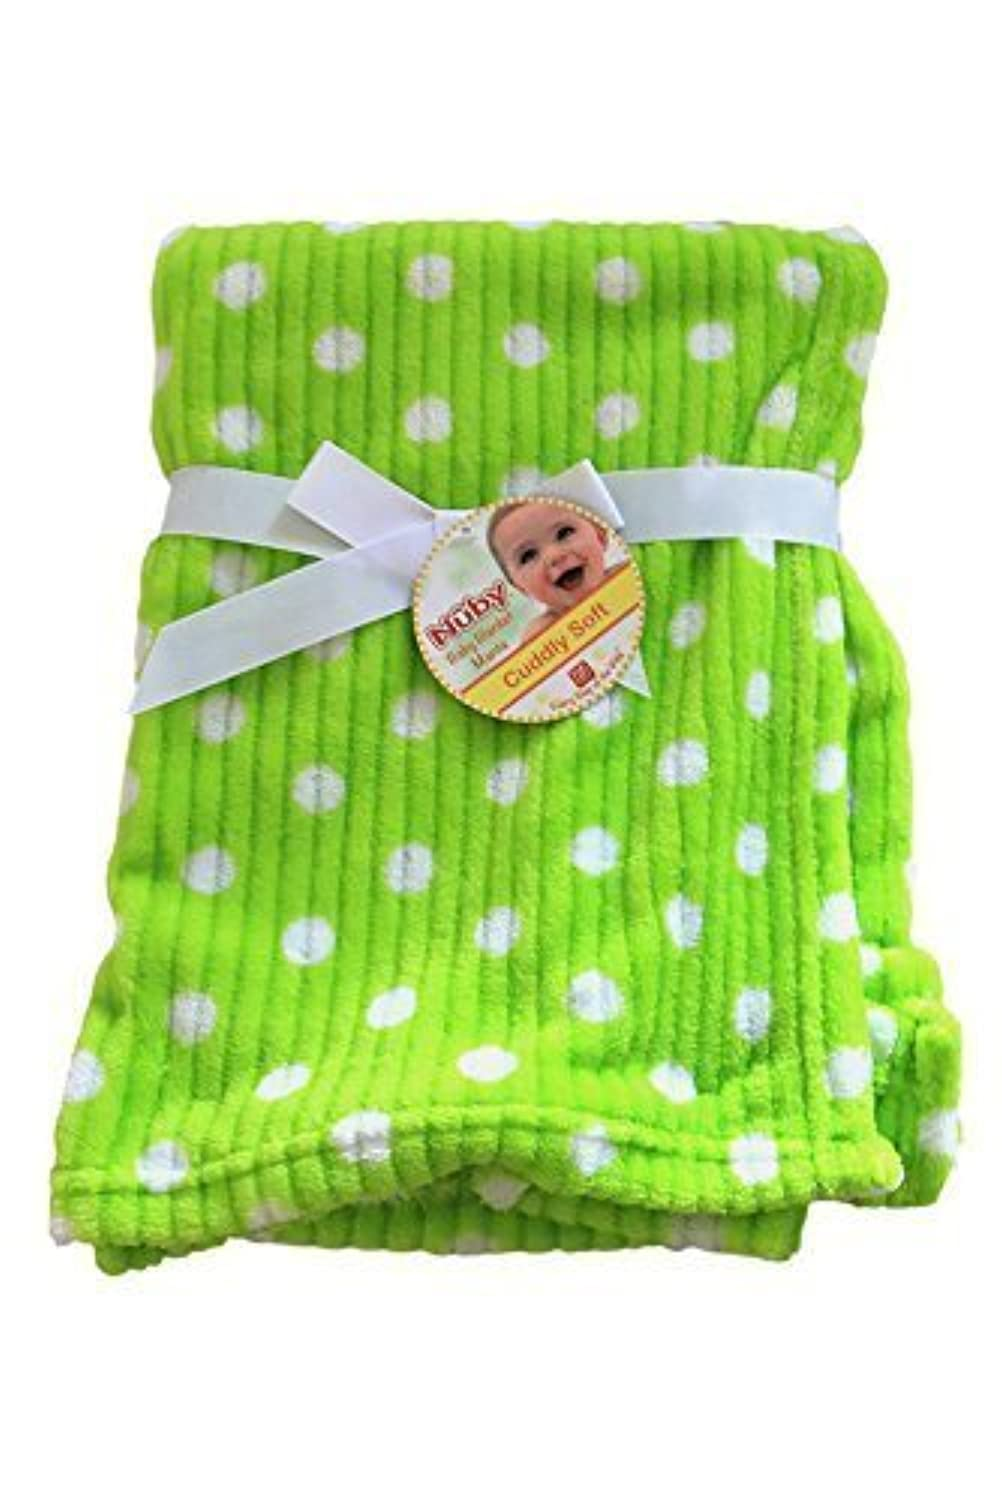 Nuby Cuddly Soft Unisex Baby Blanket - Green and White [並行輸入品]